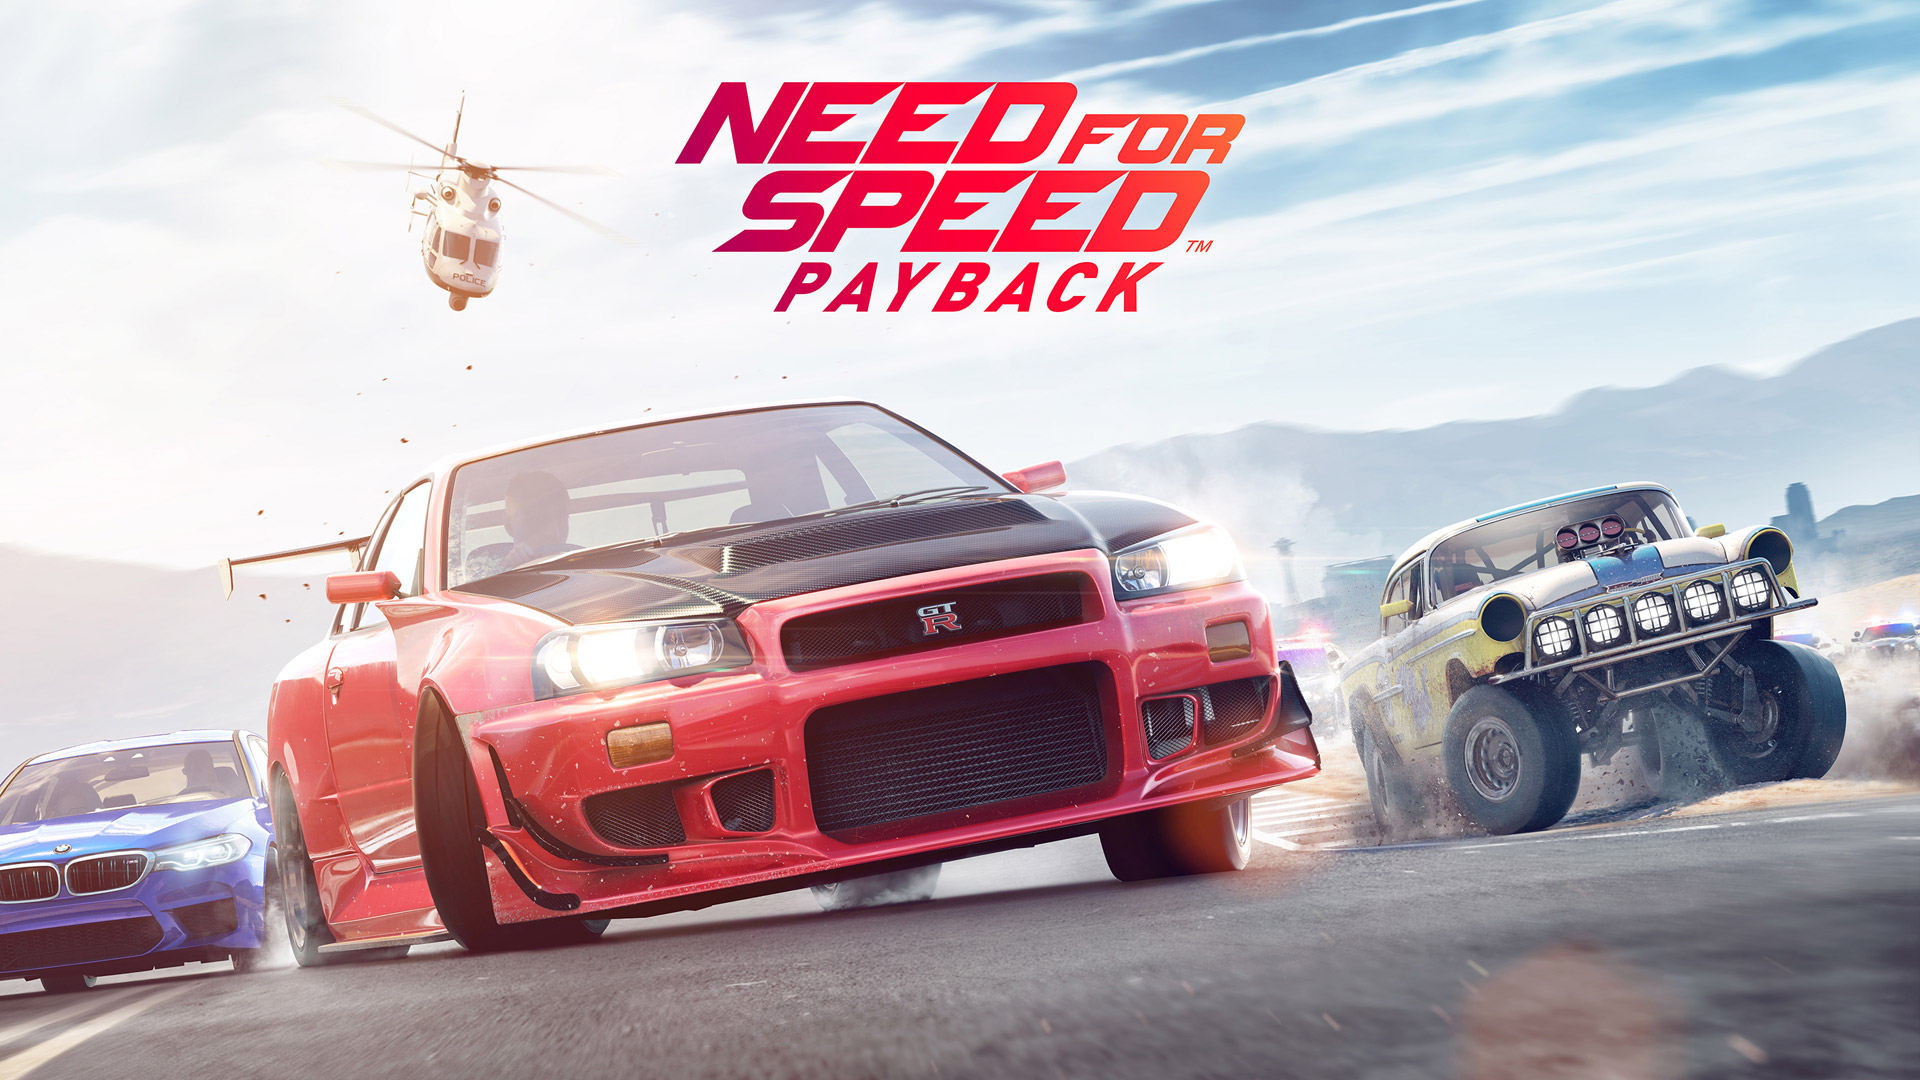 Need For Speed Payback Wallpaper in 1920x1080